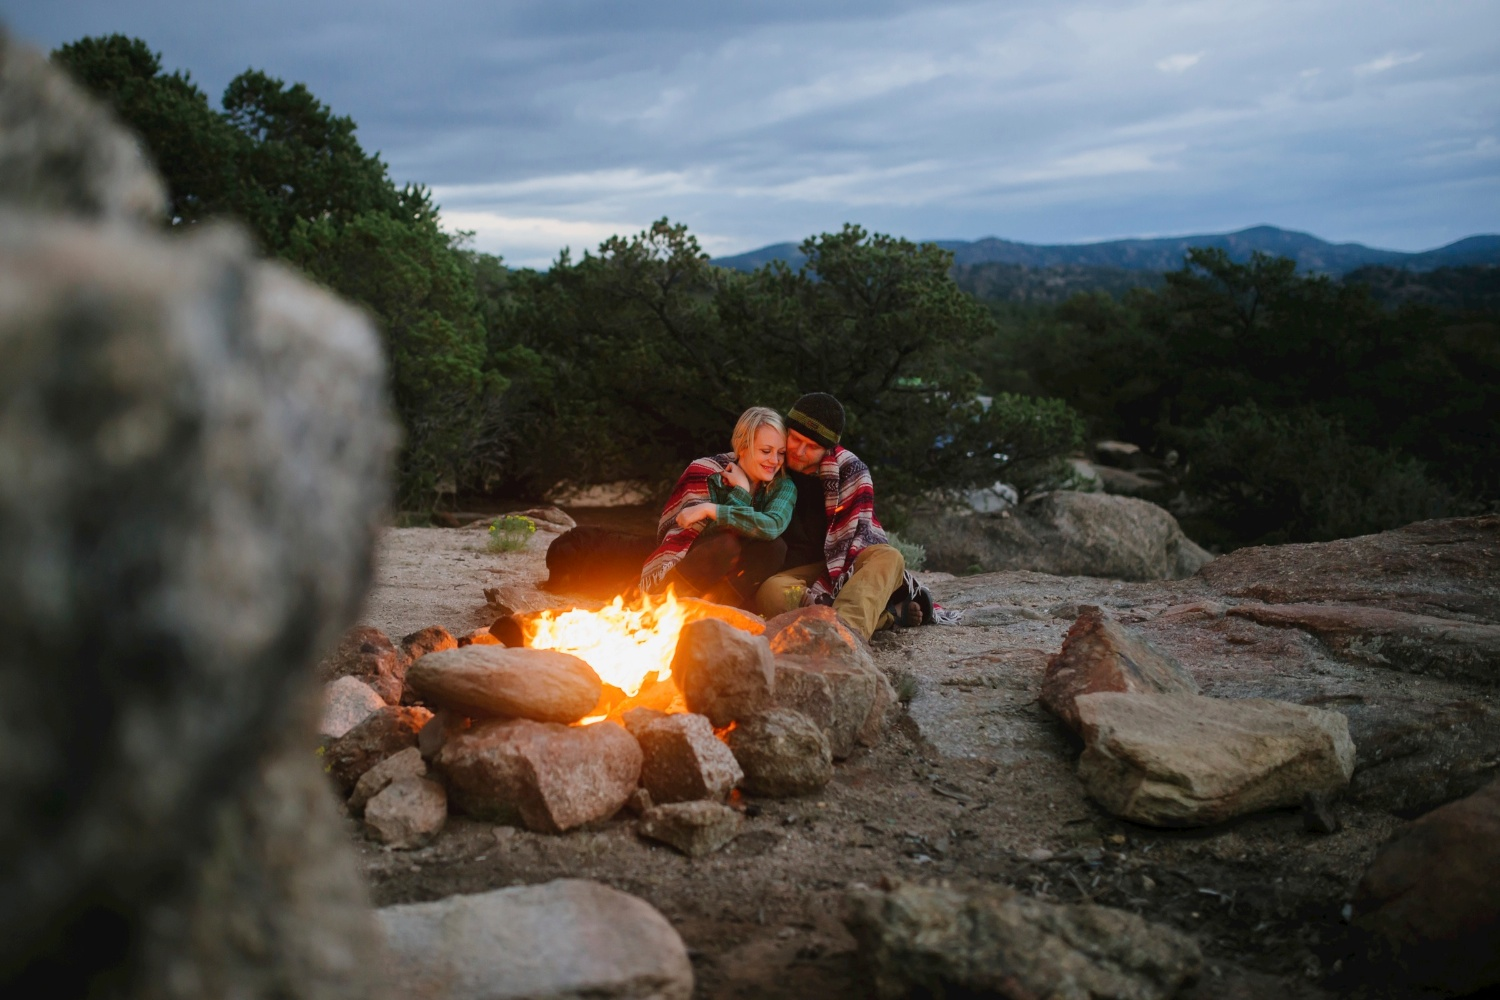 Adorable camping engagement photoshoot cuddling by the fire // Maddie Mae Photography // Epic Adventure Colorado Engagement Photographer